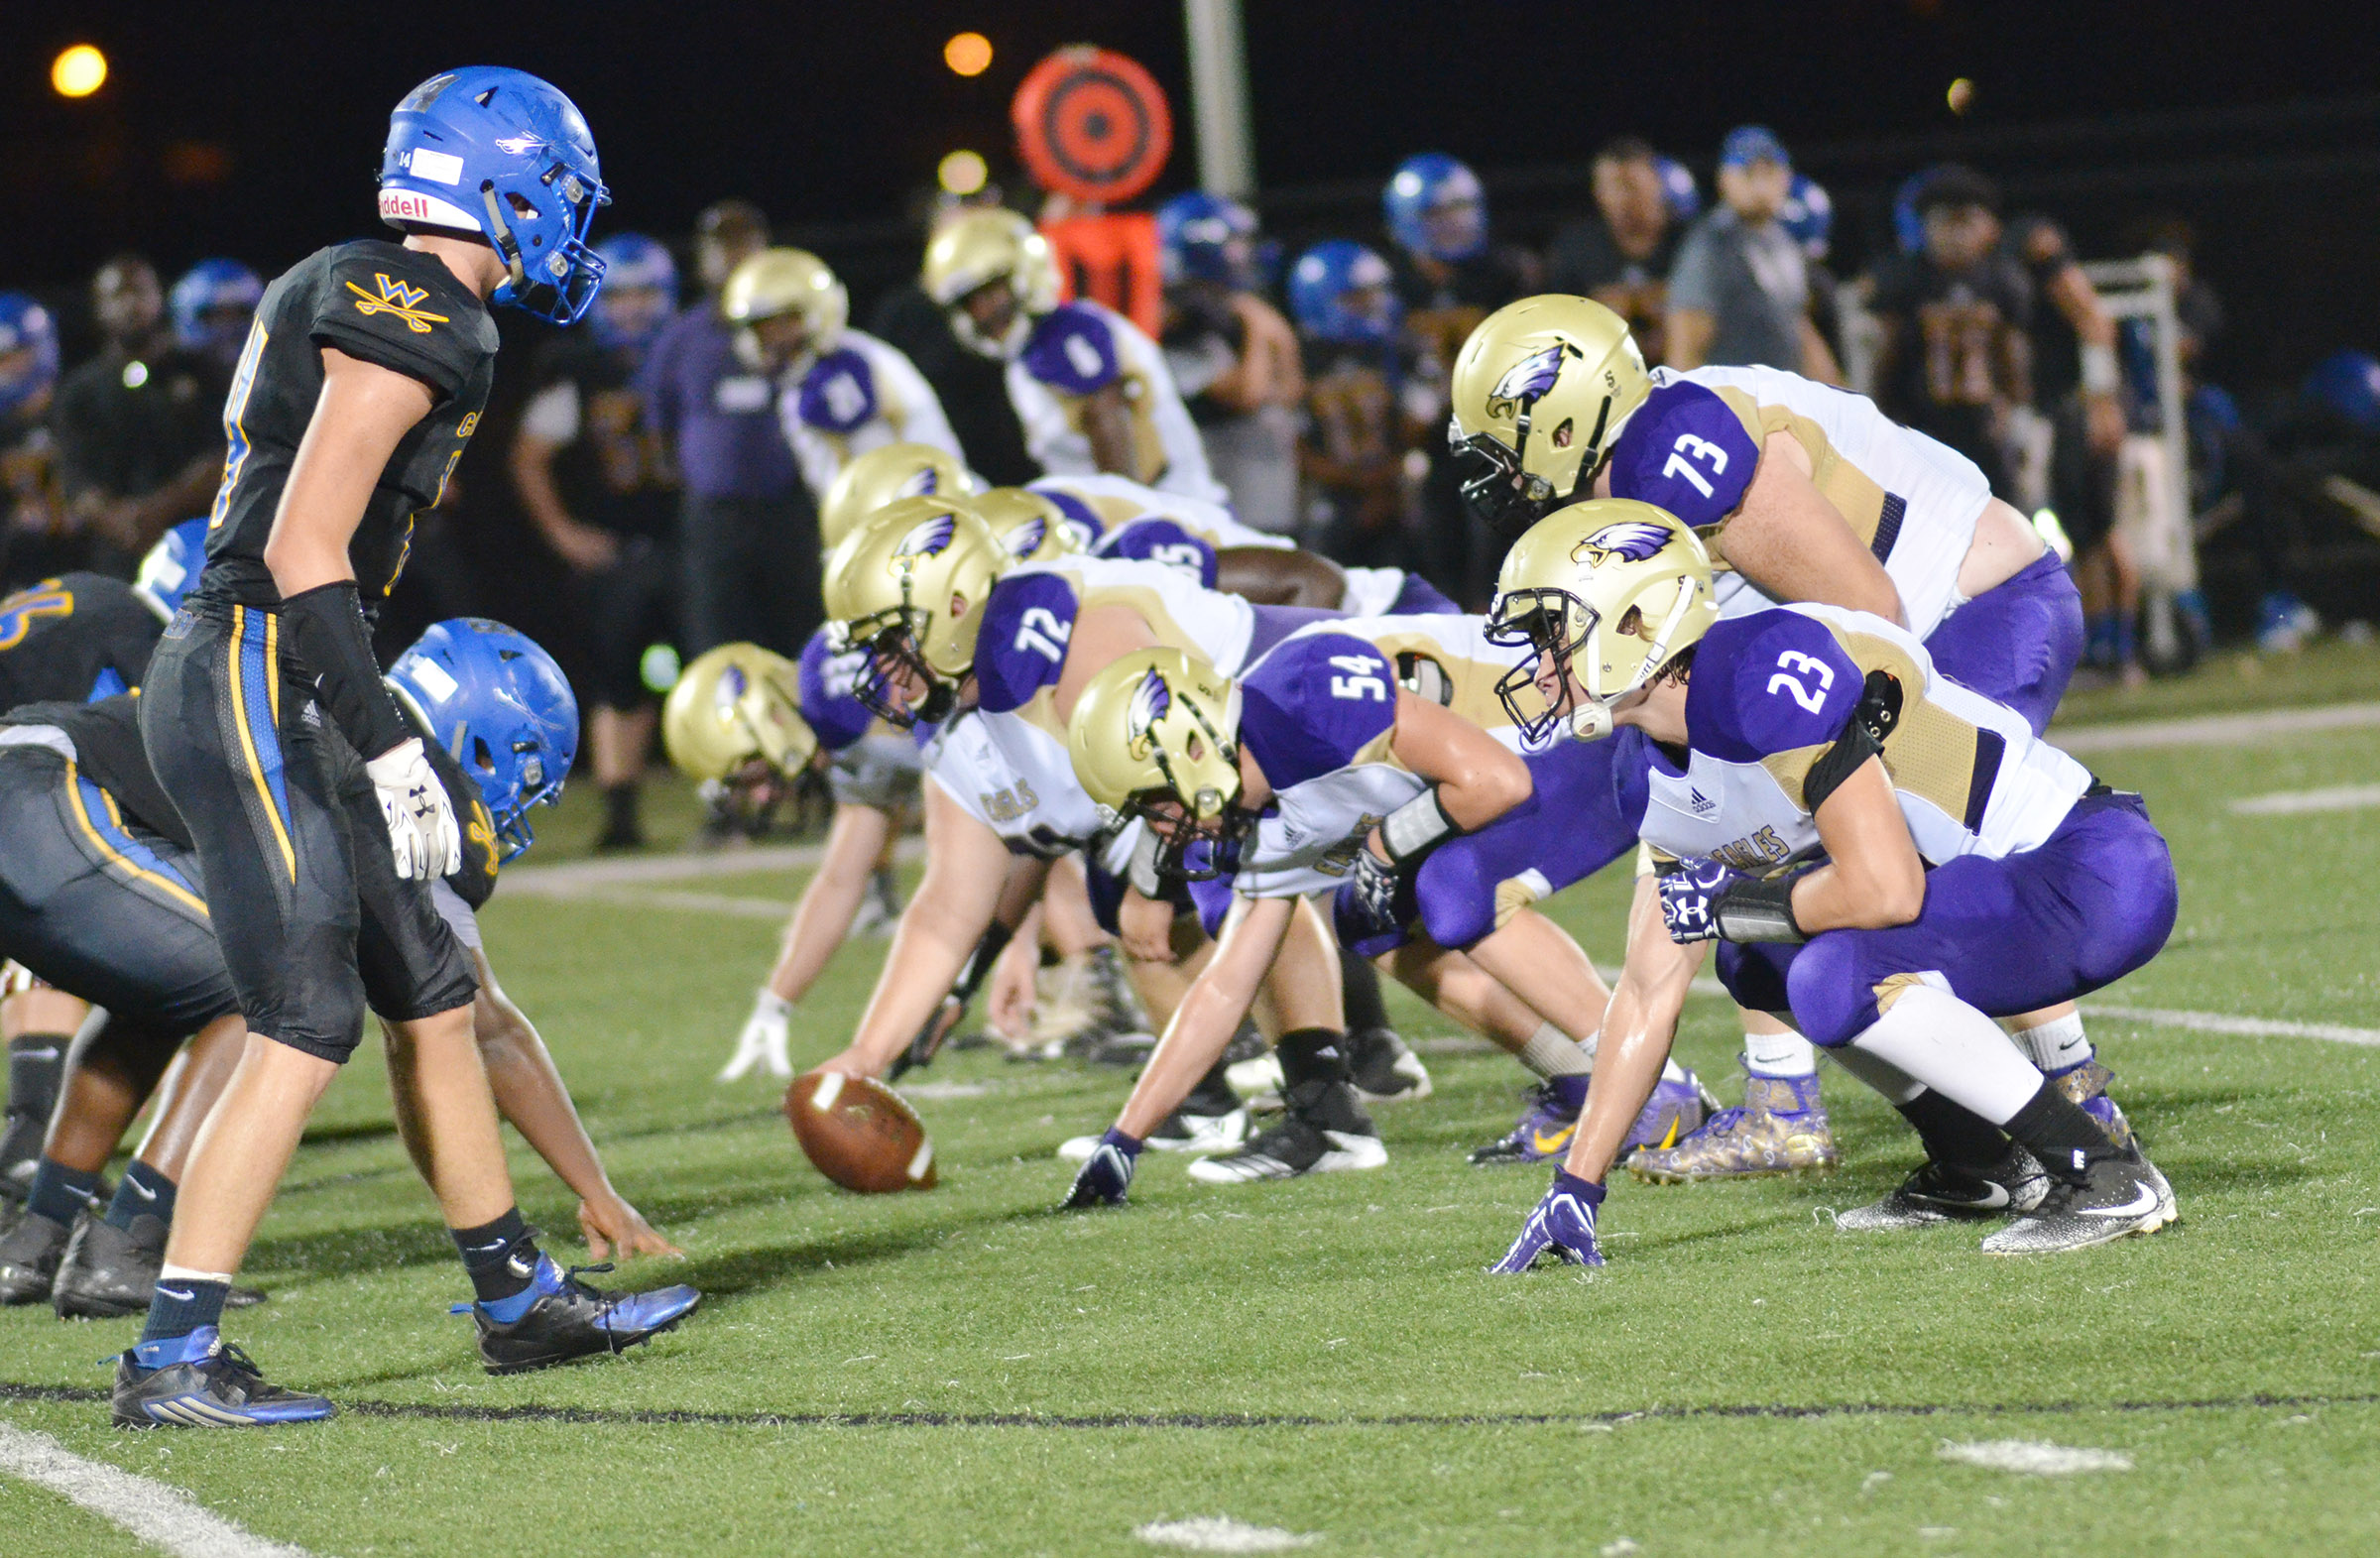 CHS offensive line players get ready to snap the ball.